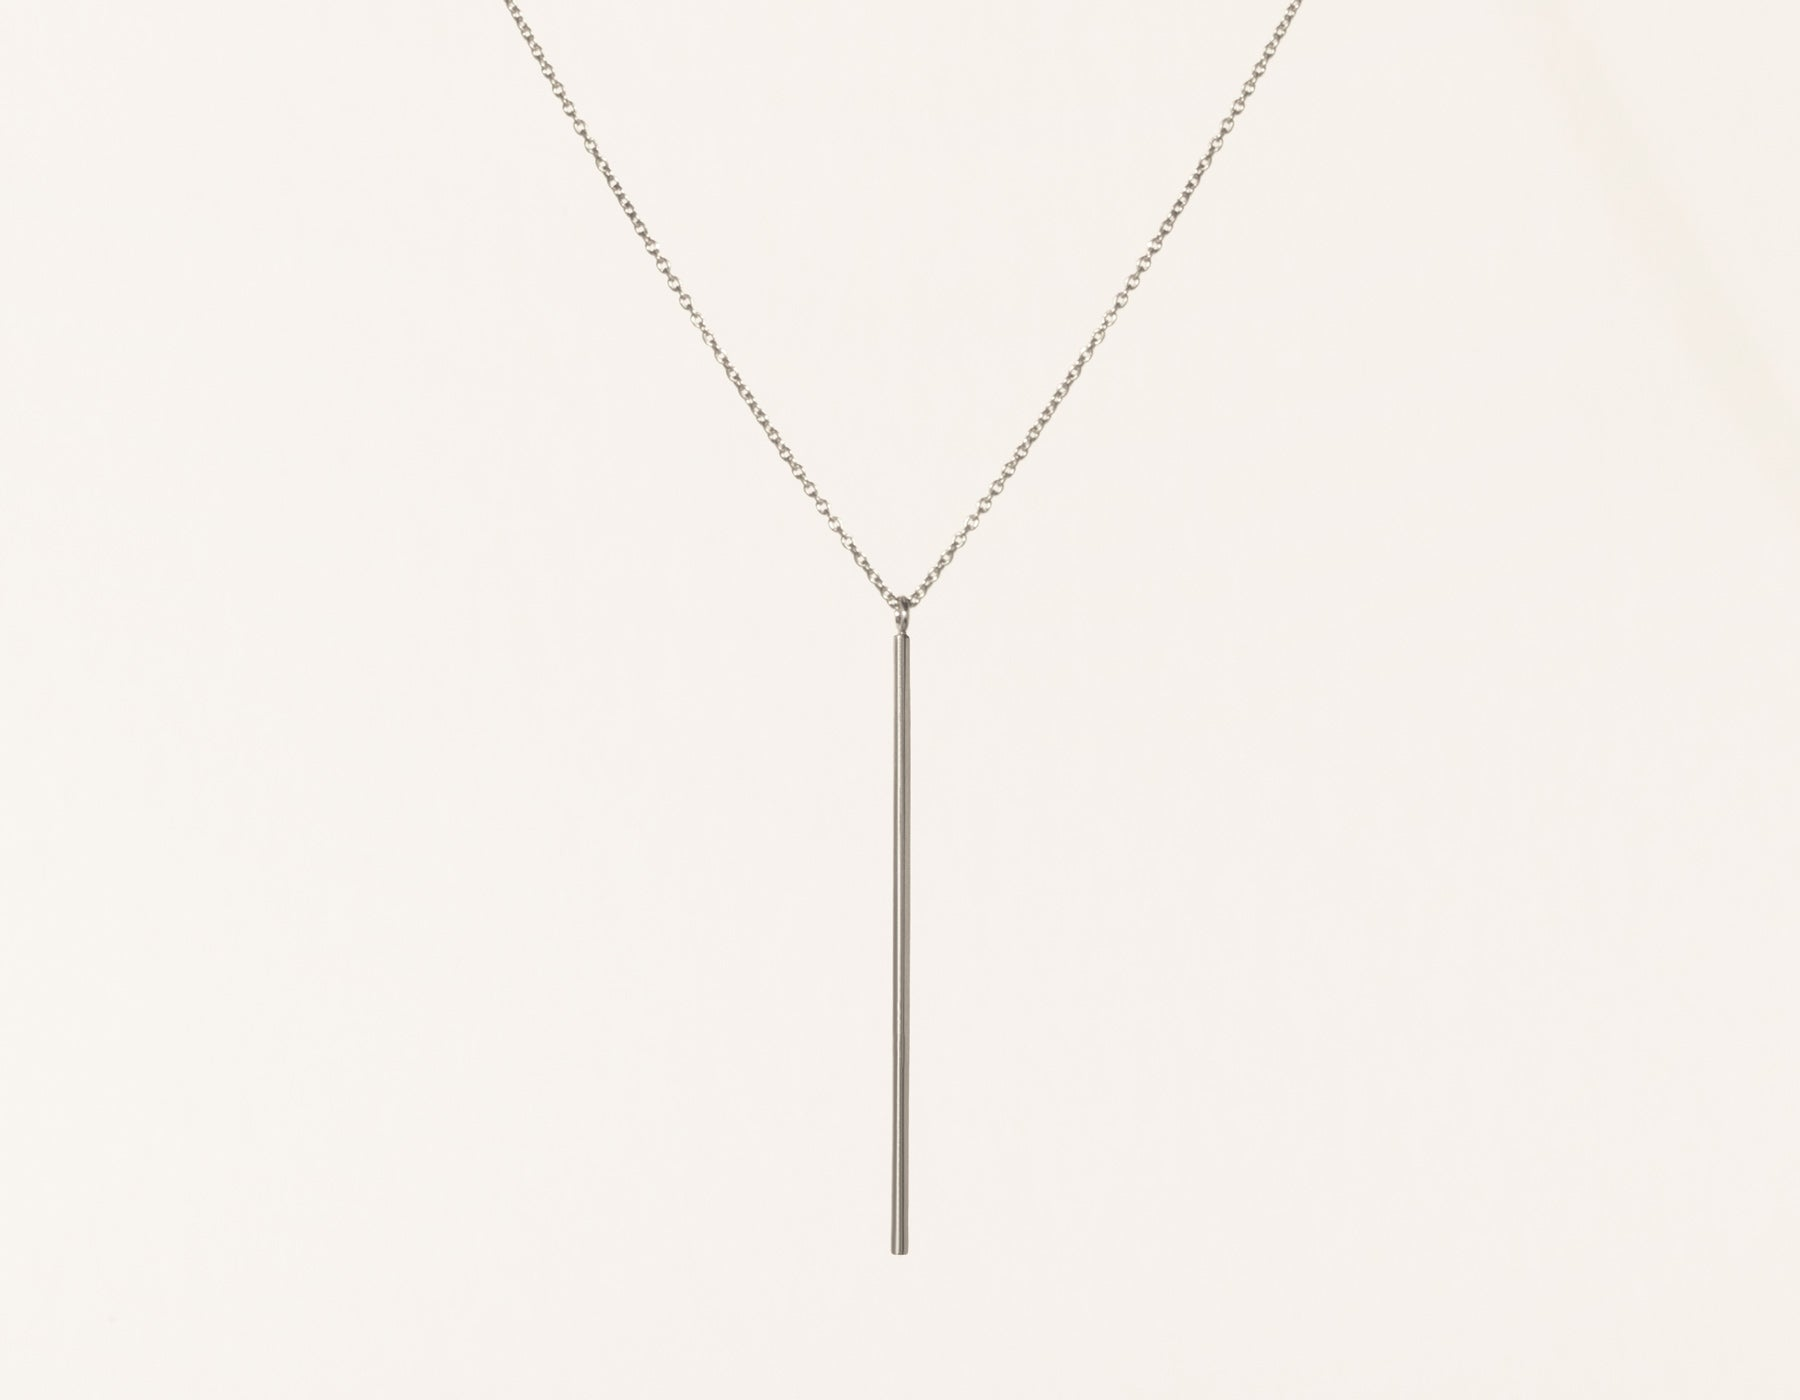 Simple Vrai & Oro Solid 14k White Gold Vertical Bar Necklace